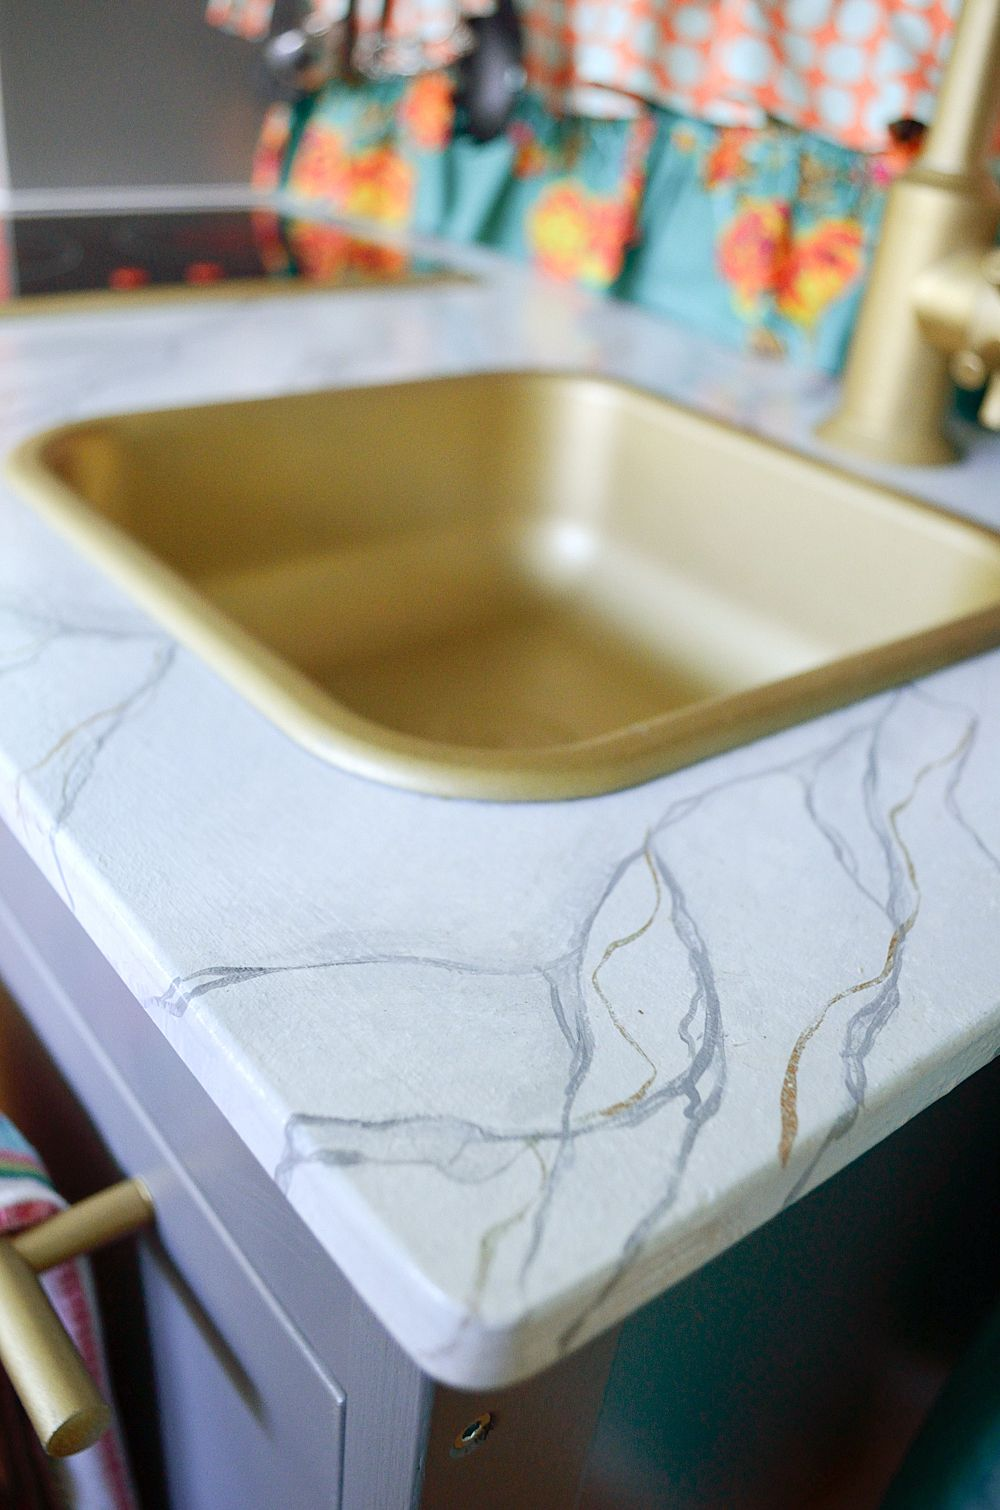 Ikea Keuken Contact Ikea Duktig Kitchen Marble Top Detail Or You Could Use Contact